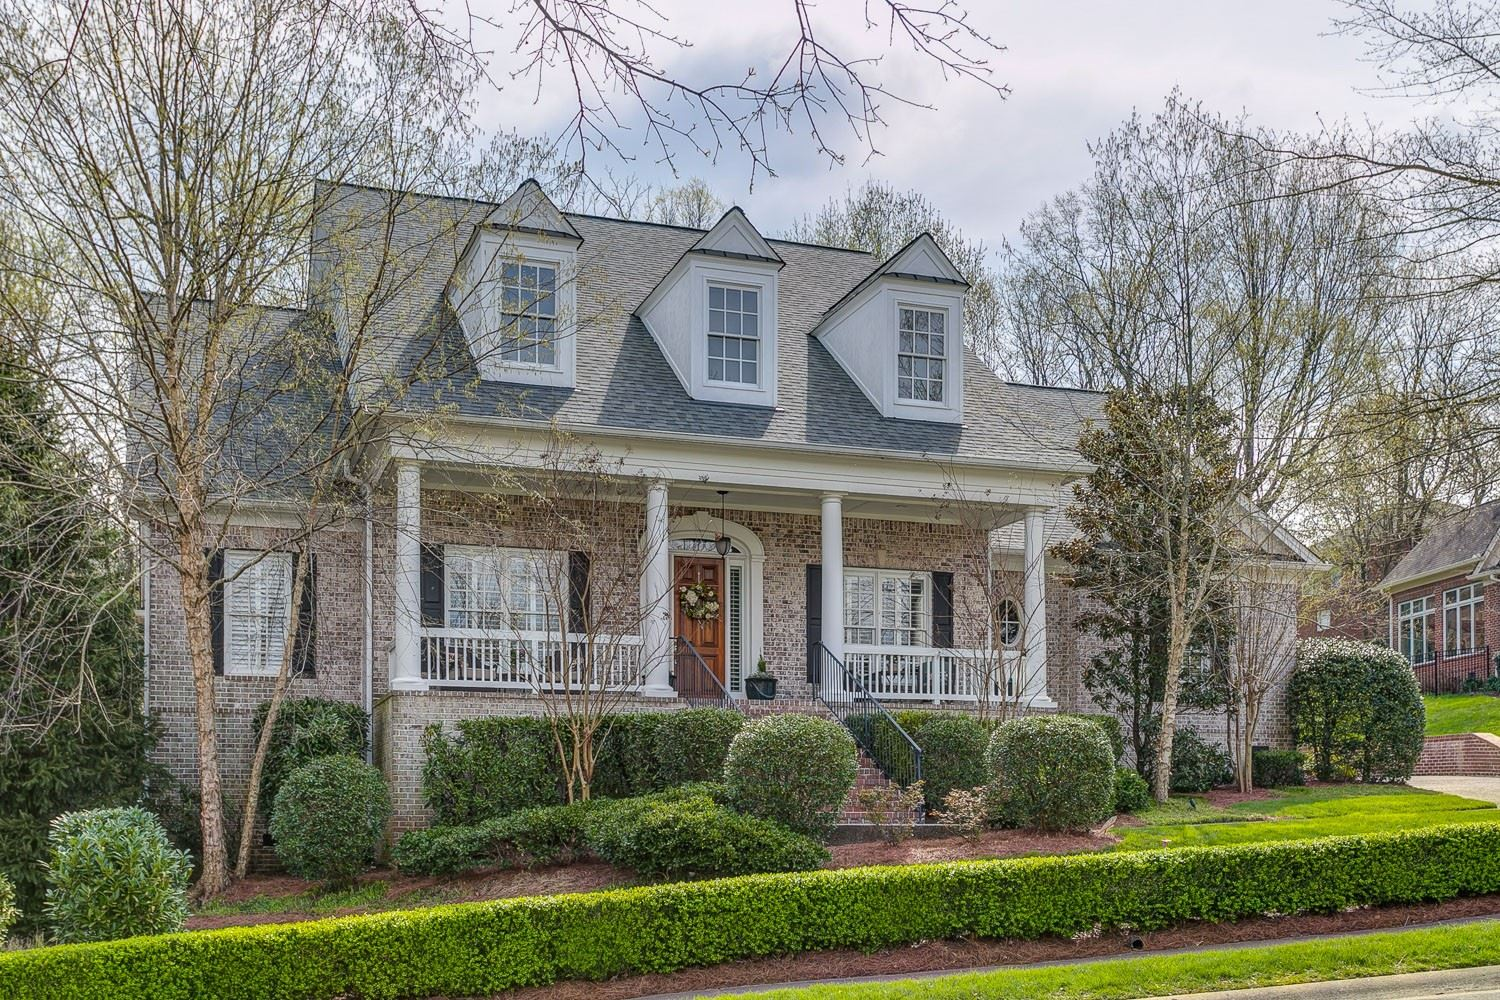 Photo of 327 Canton Stone Dr, Franklin, TN 37067 (MLS # 2136213)